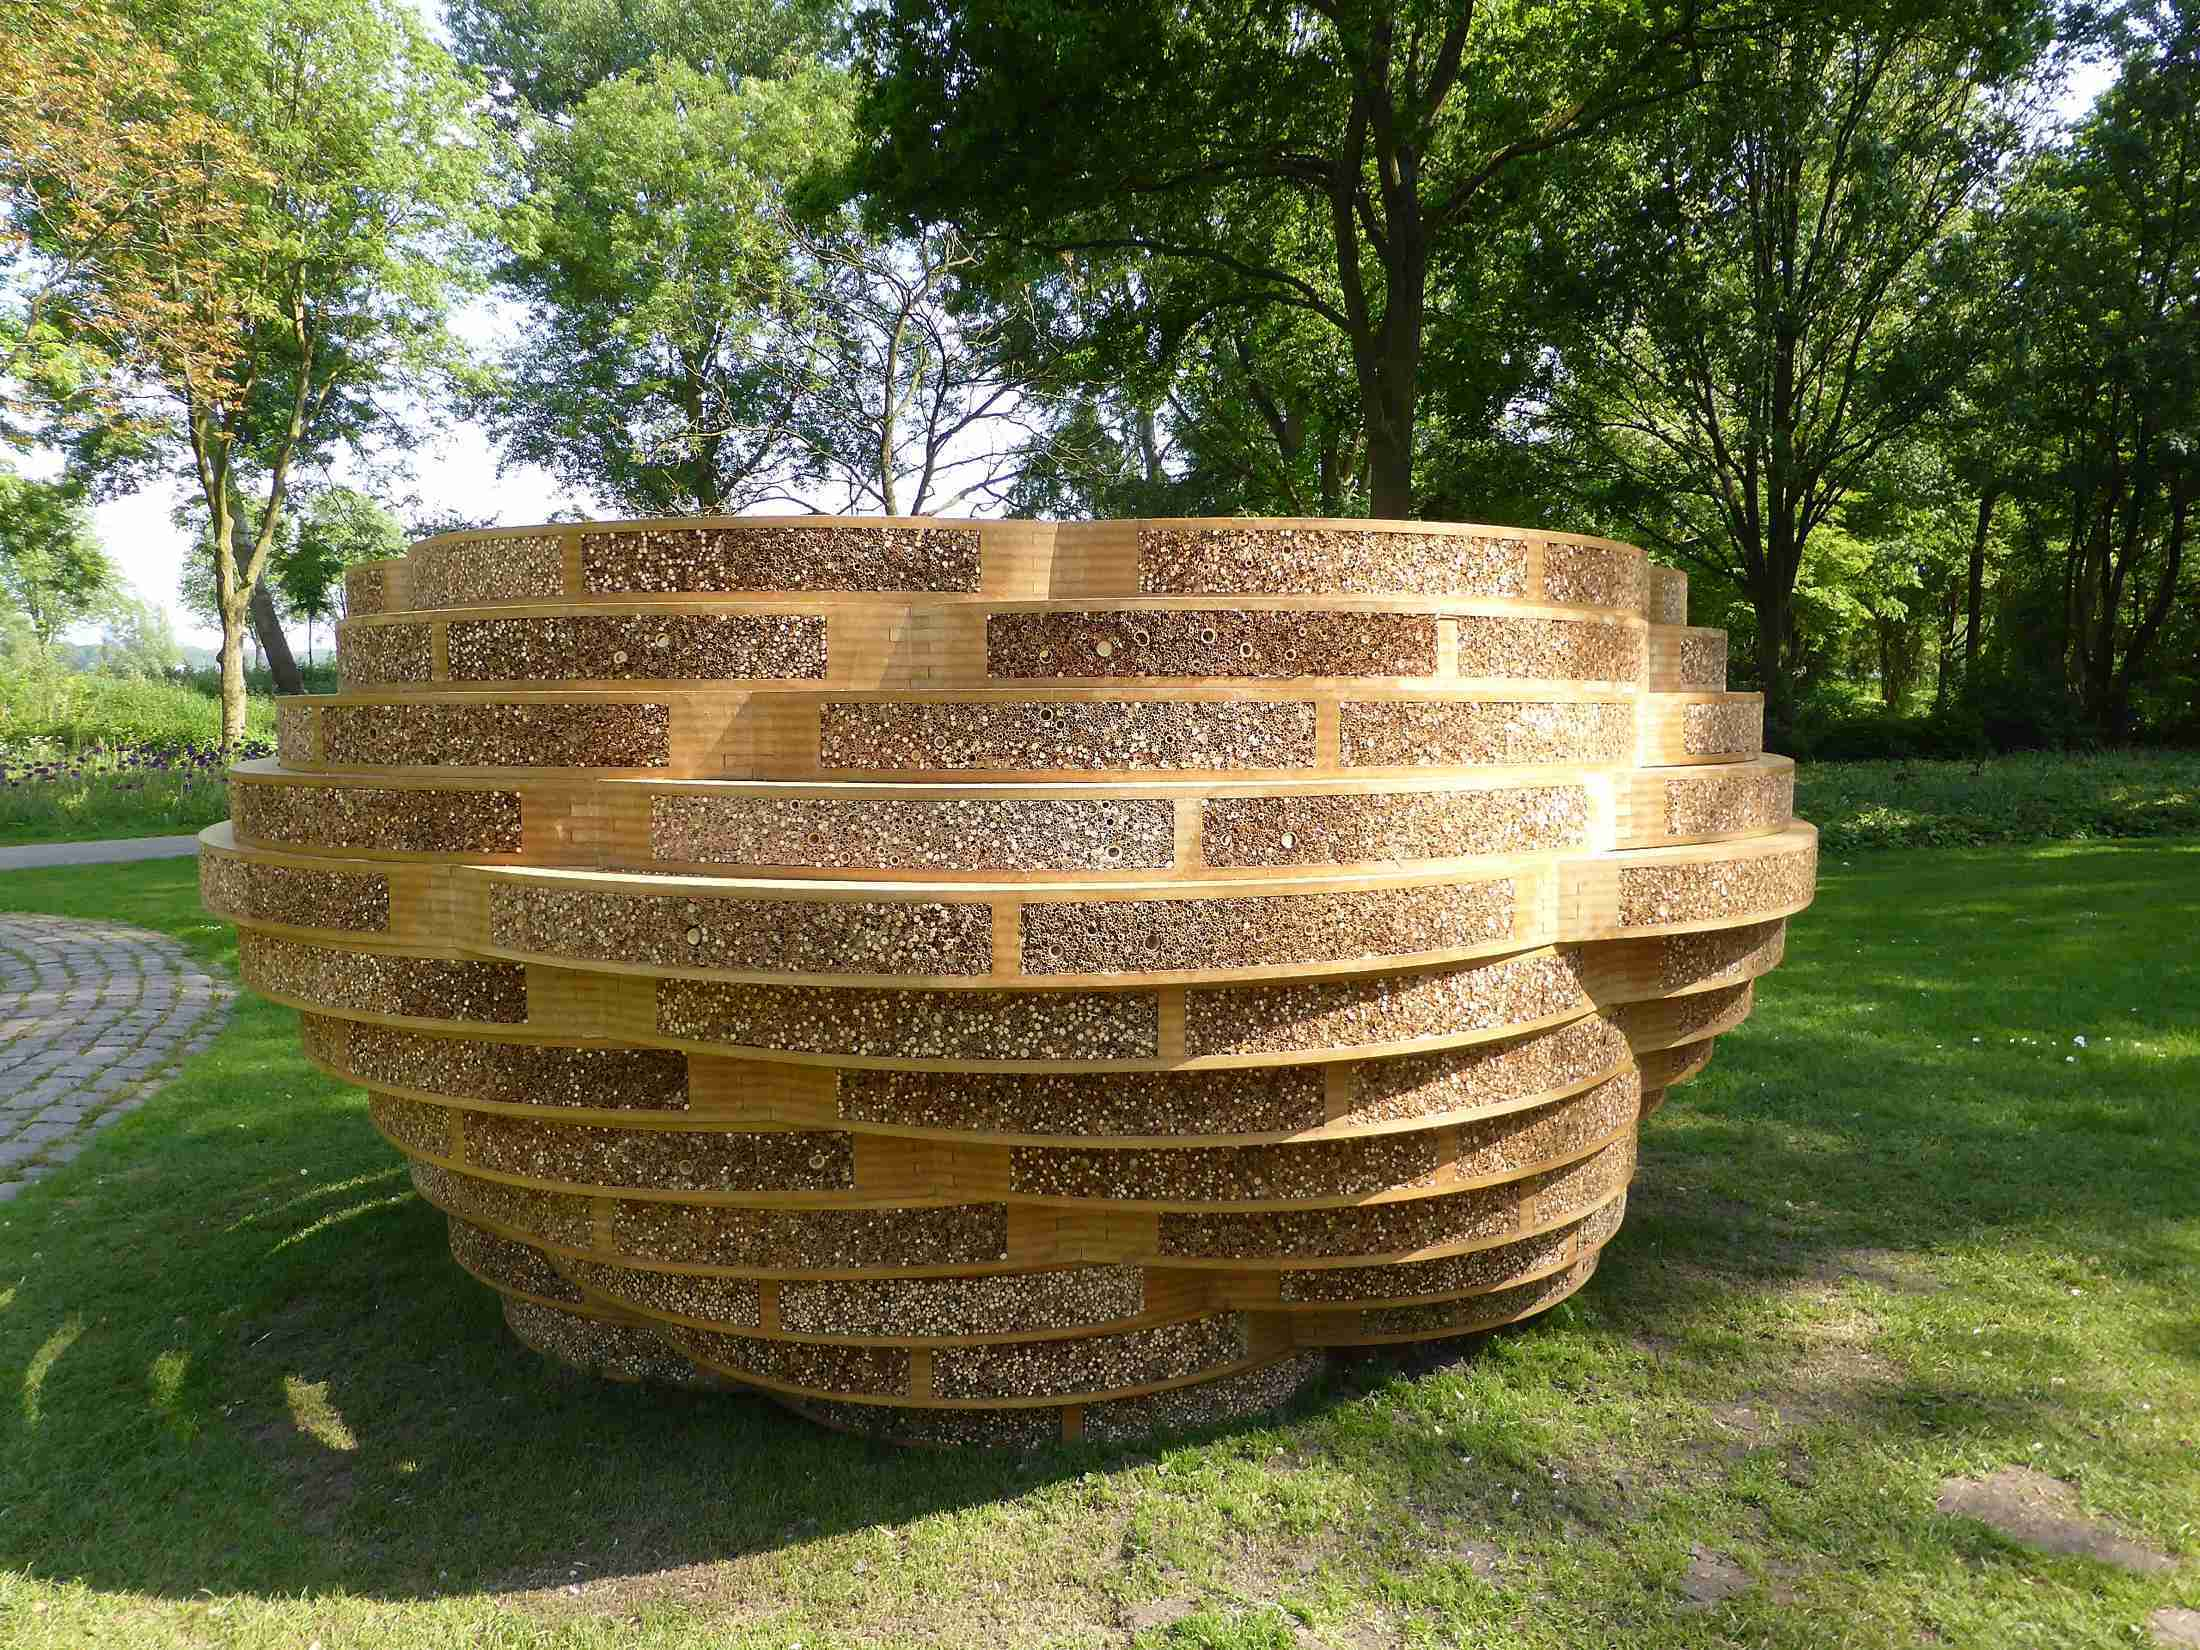 Sculptural bench, Buzzbenvh is a sitting area and biotope for wild bees